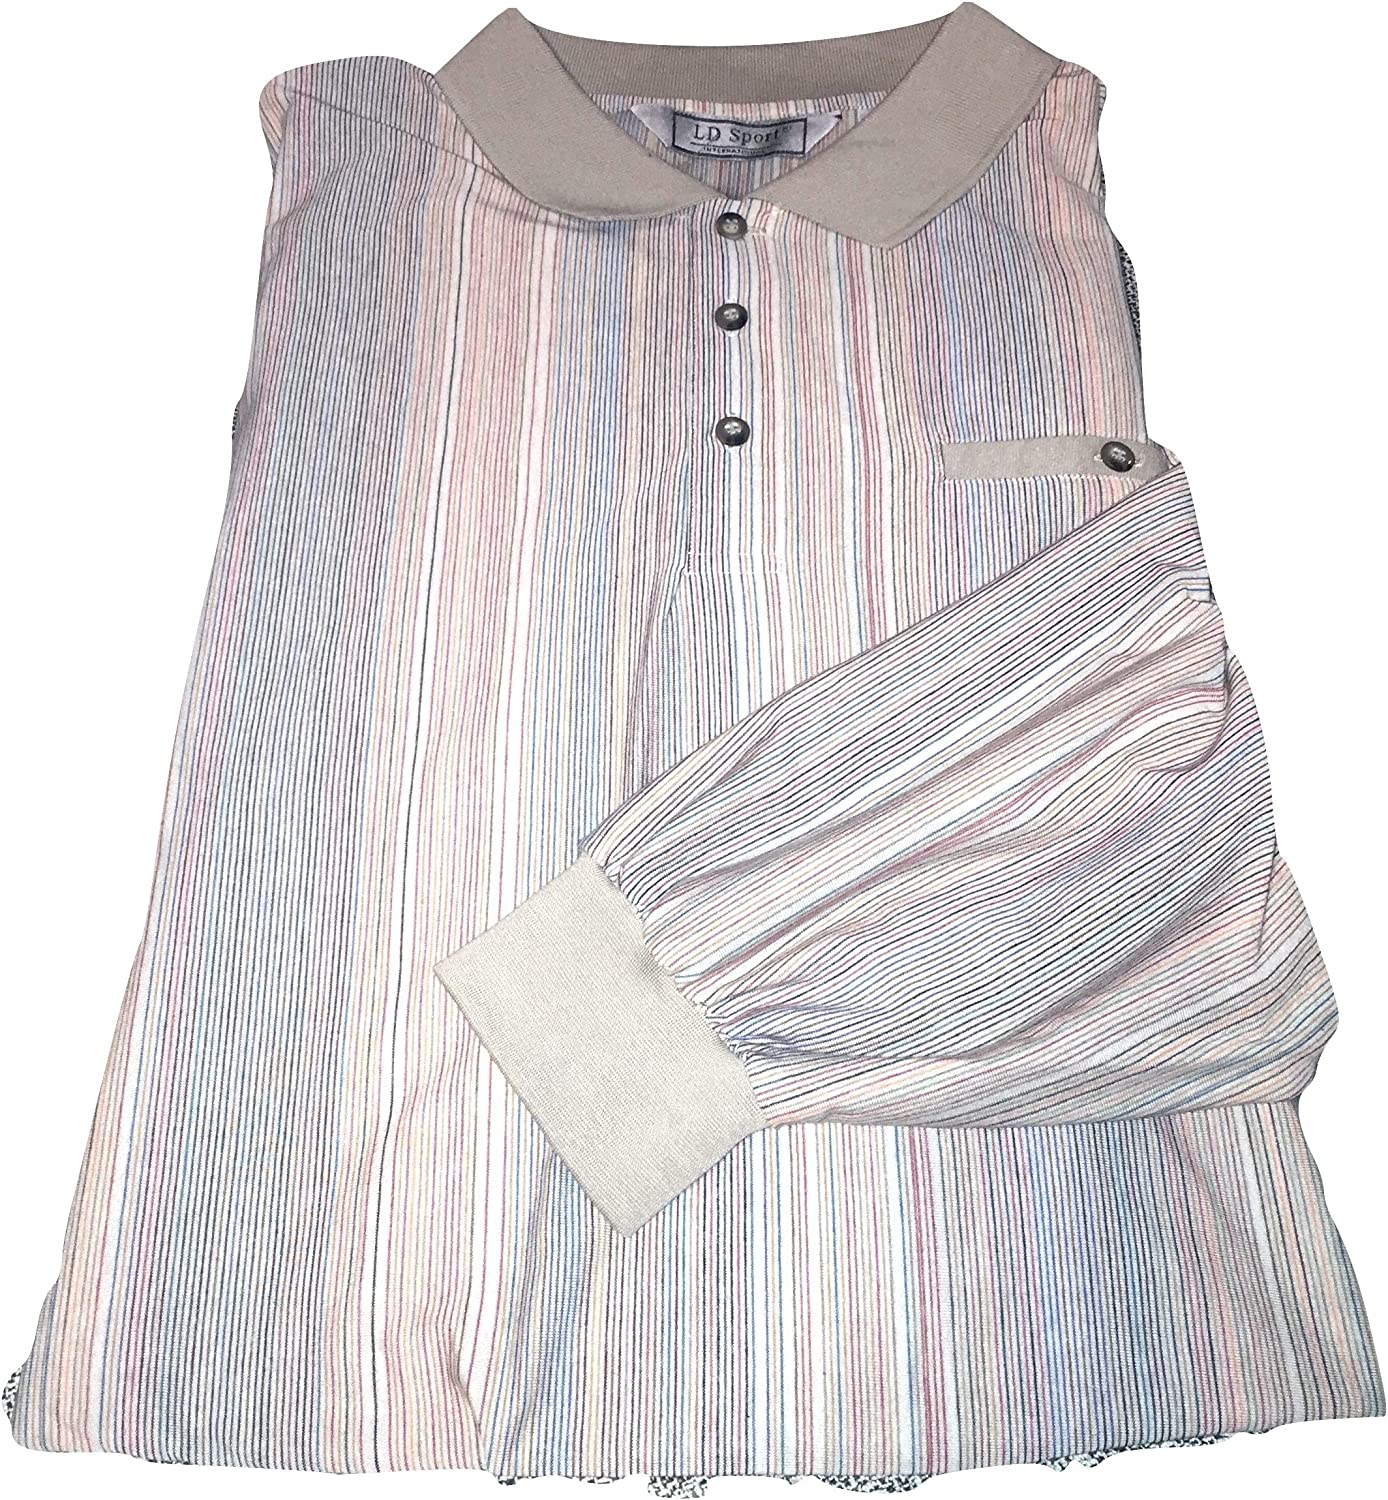 Long Sleeve Lightweight Patterned Big and Tall Banded Bottom Polo Shirts to 6X Tall